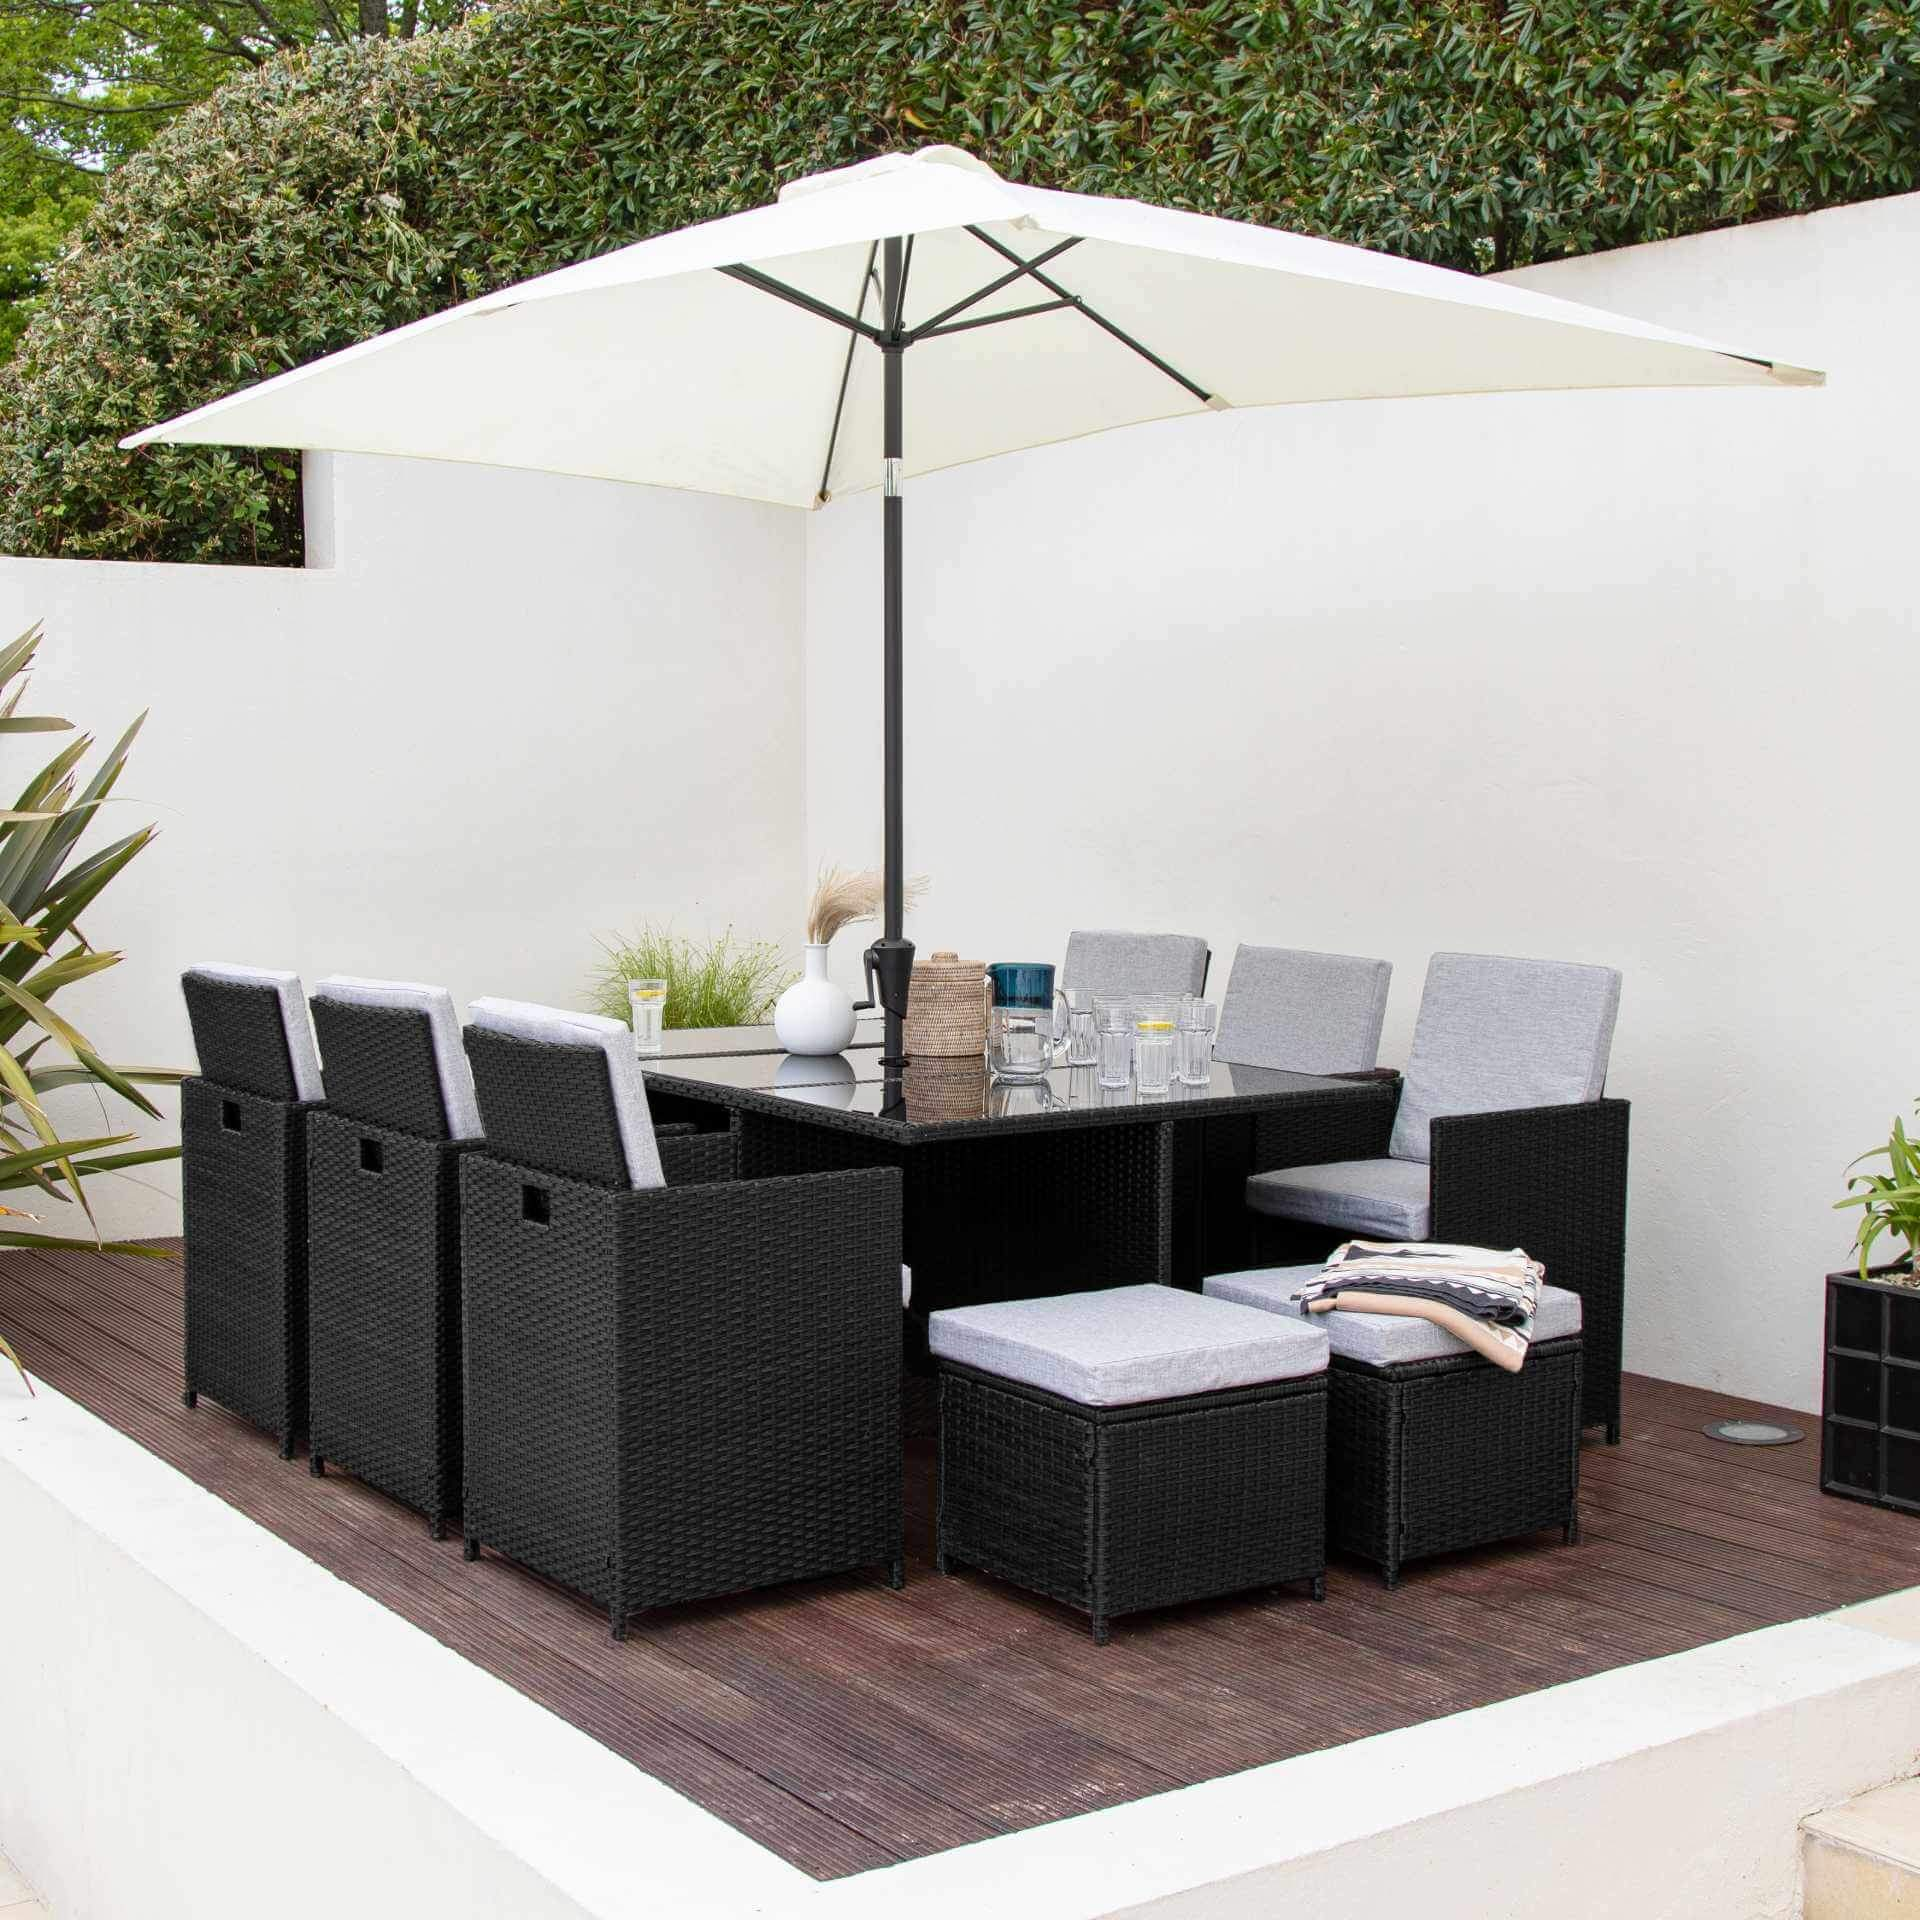 10 Seat Rattan Cube Outdoor Dining Set with Premium Parasol and Parasol Rain Cover - Black Weave - Laura James